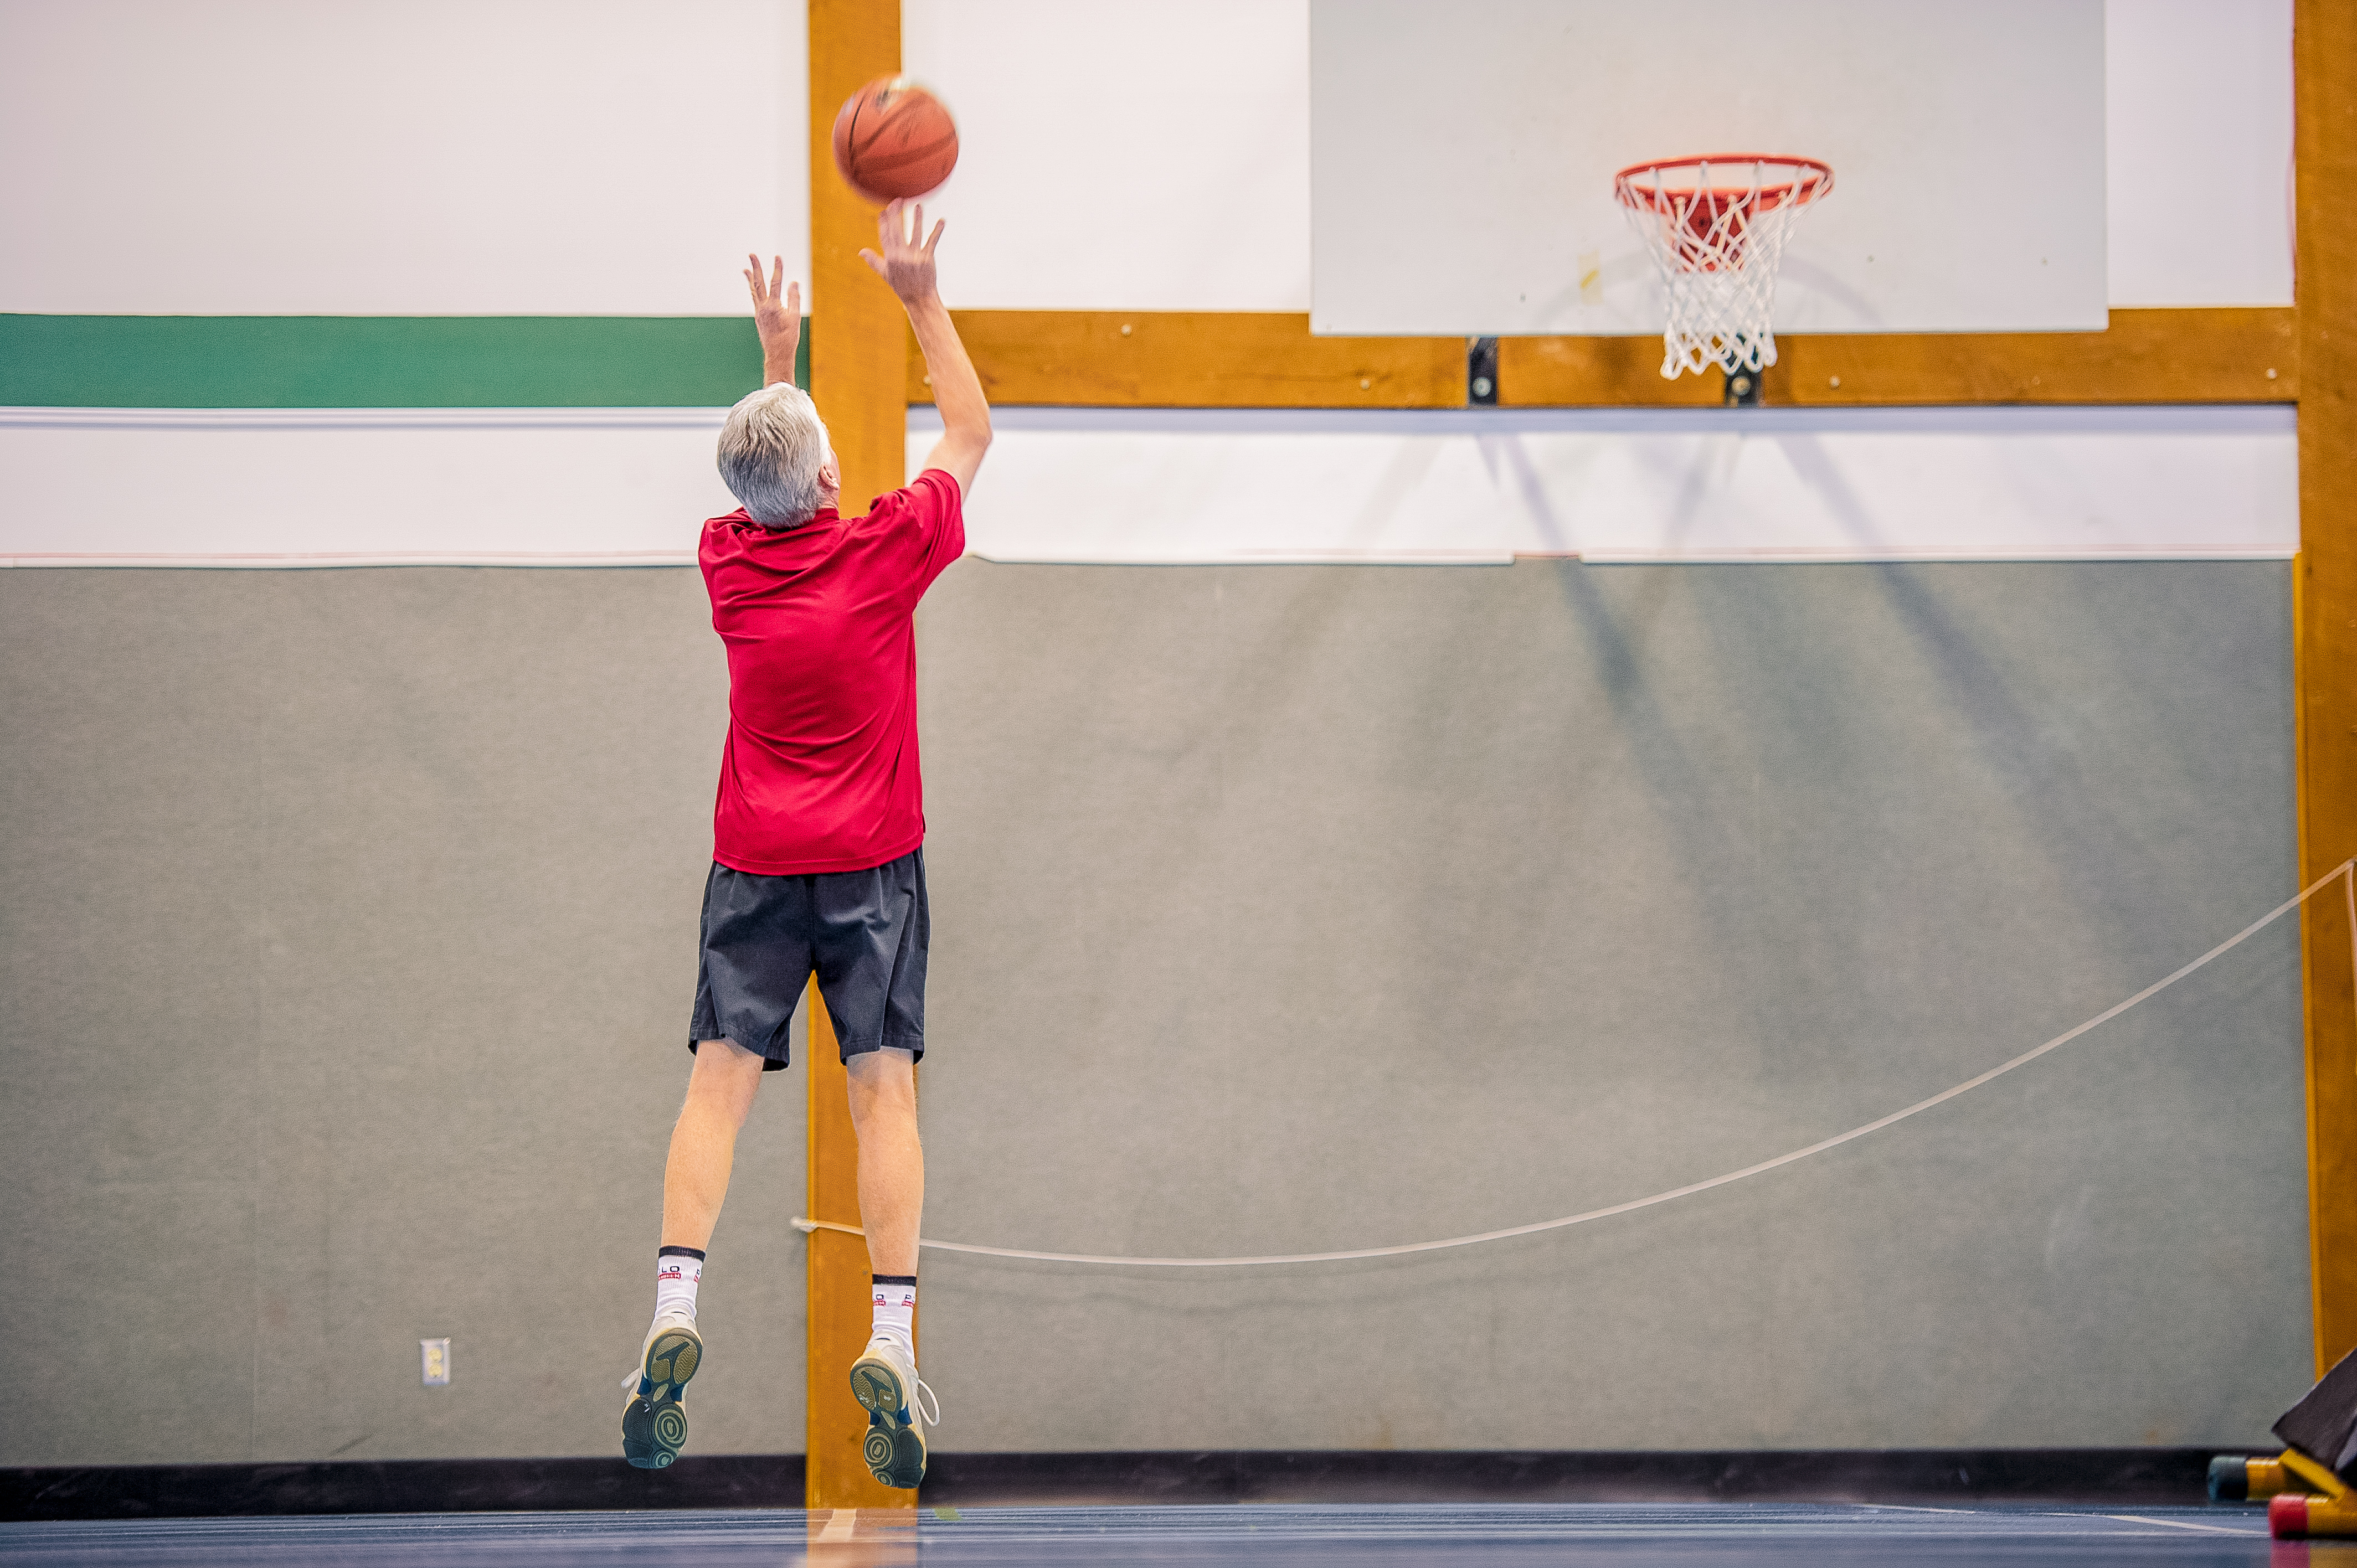 26. You can work on your 3-point shot at the Chota Recreation Center